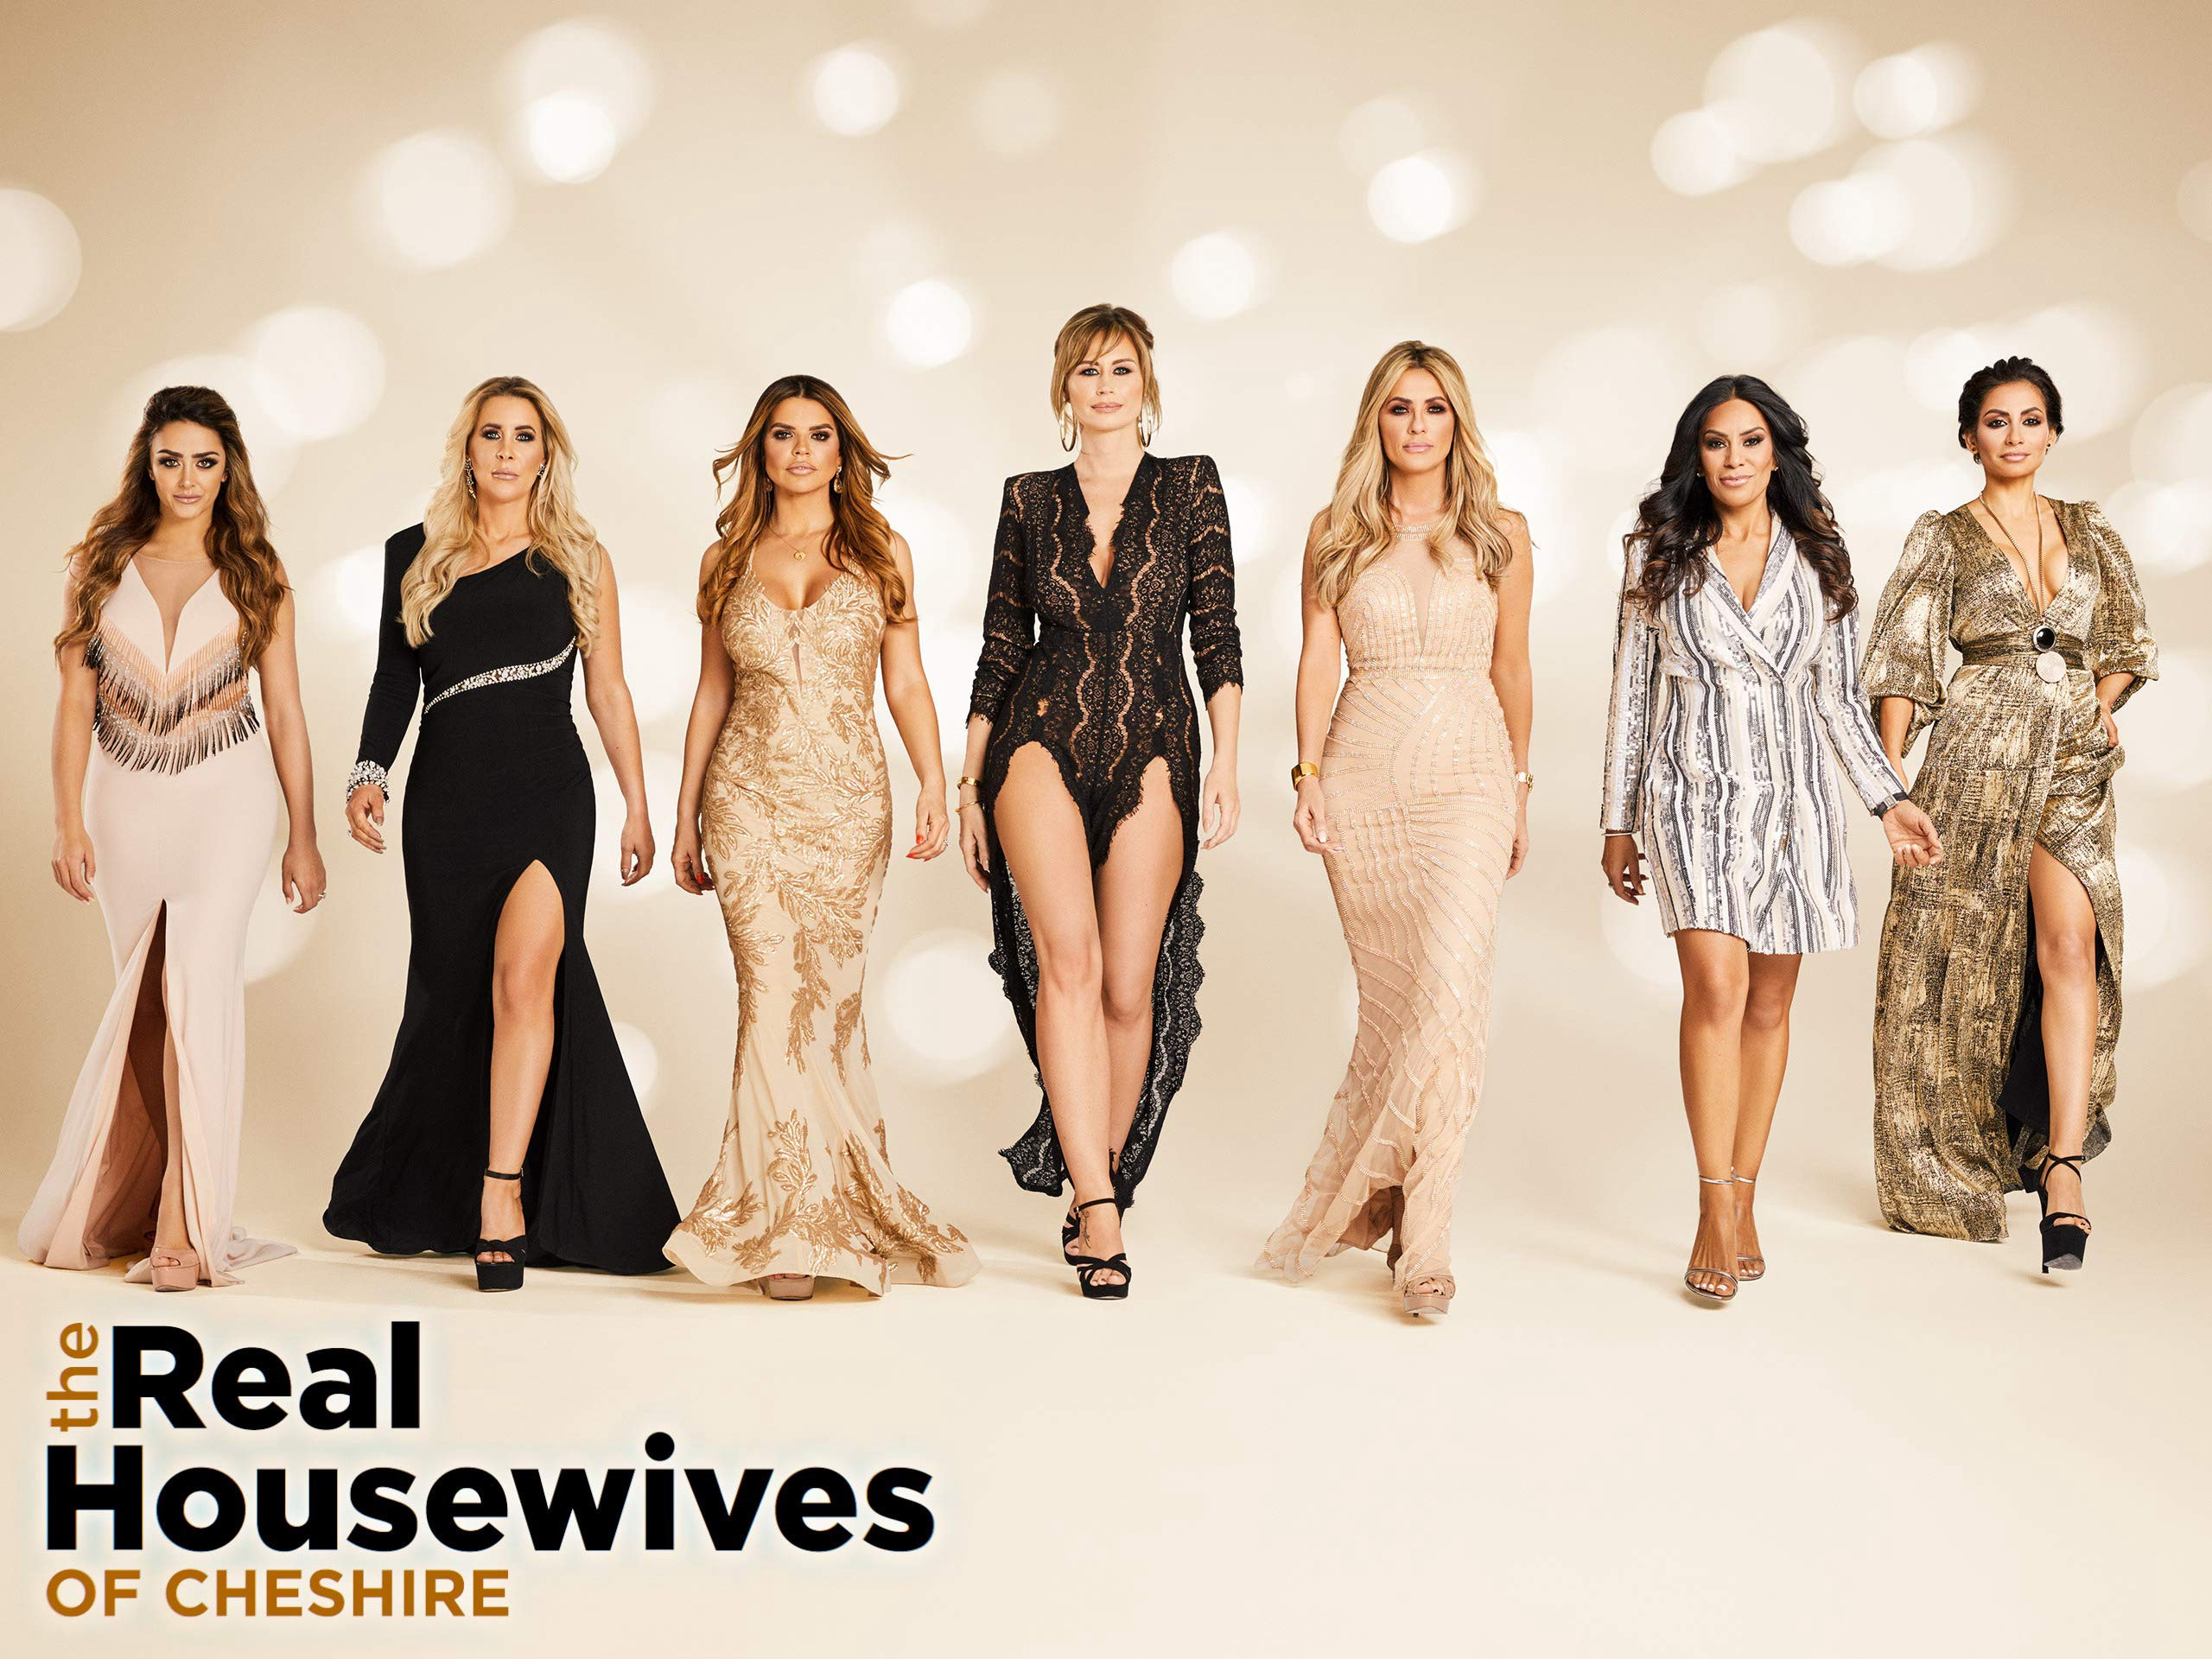 real housewives of cheshire free online